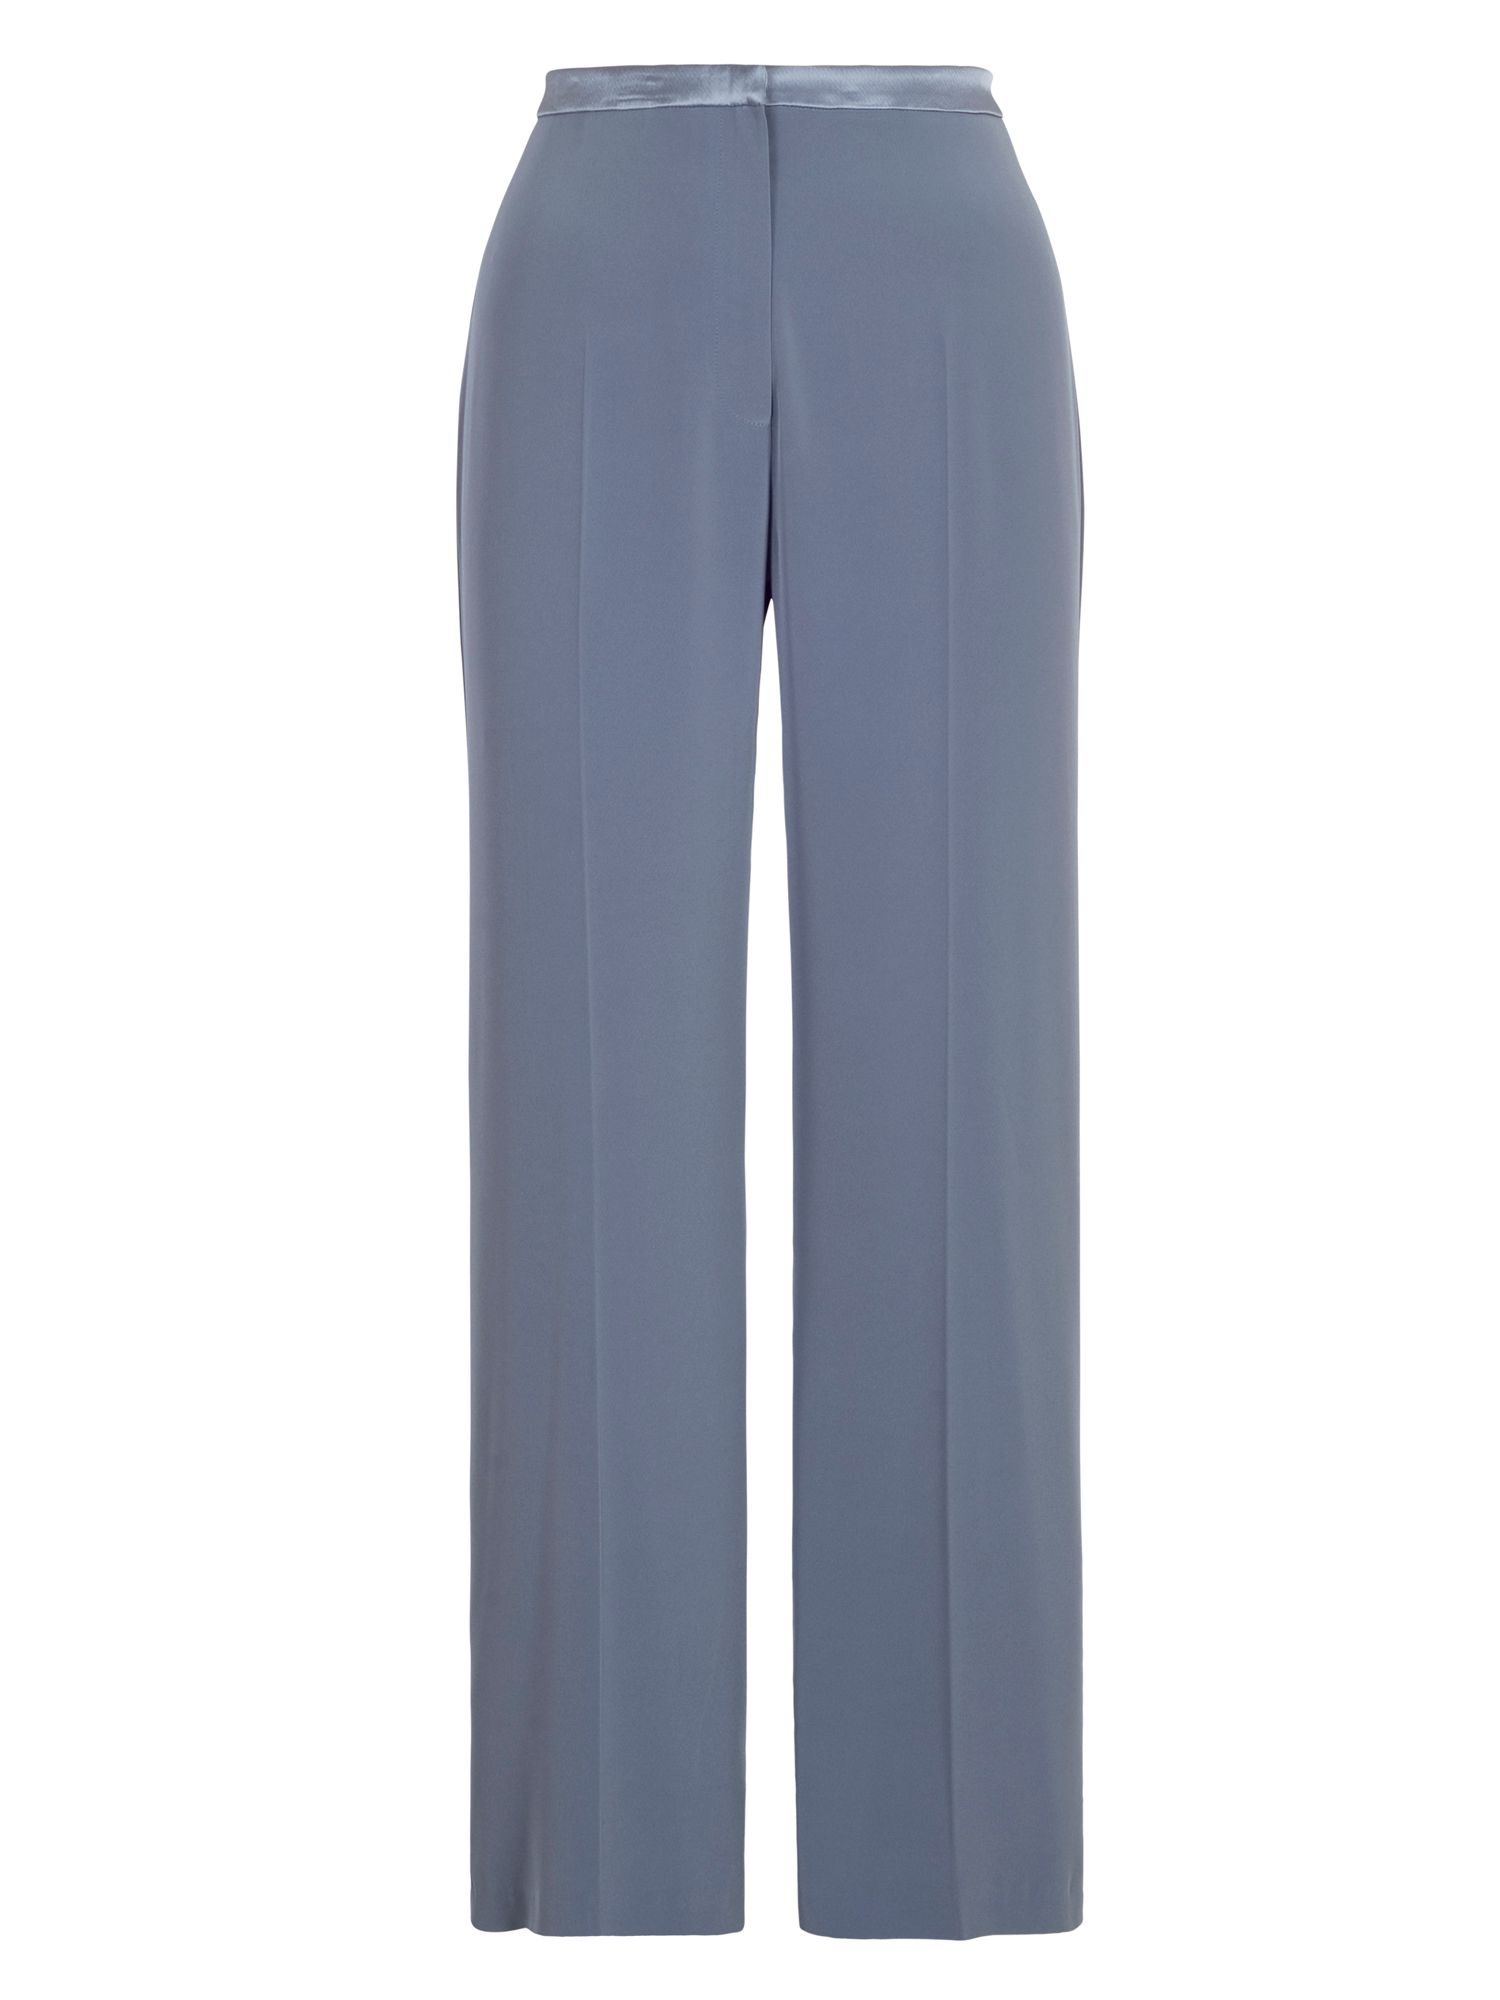 Chesca Satin Back Crepe Trouser, Grey